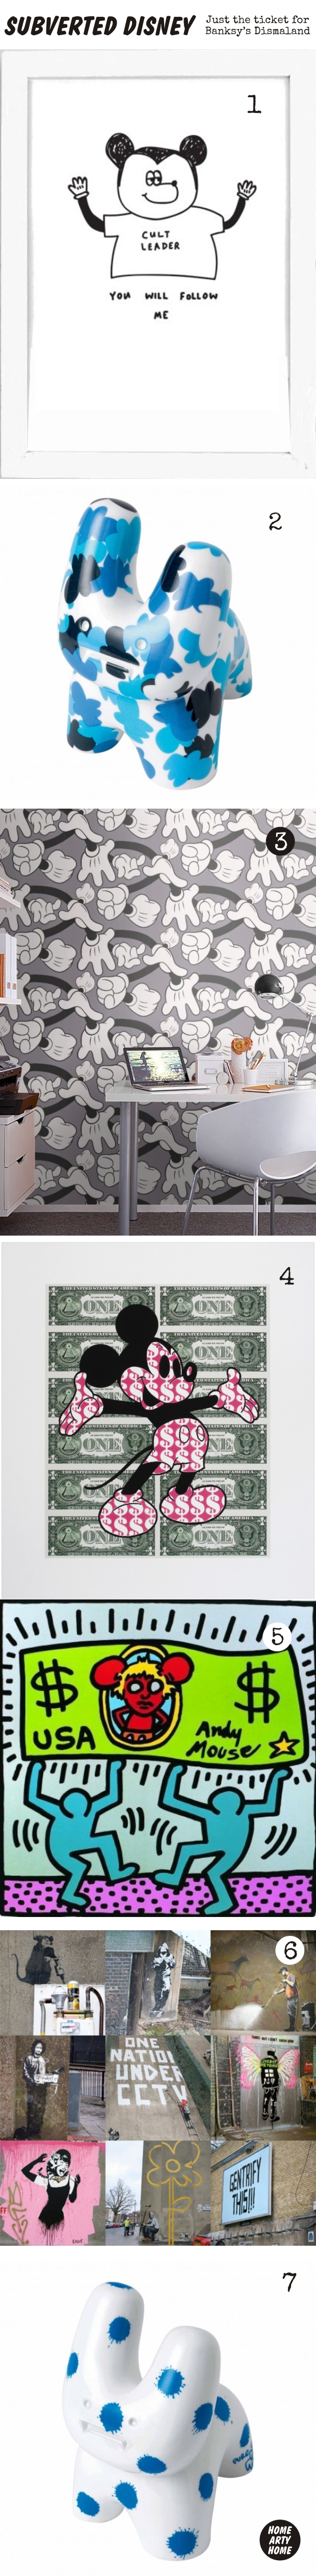 Subverted_Disney_homeartyhome